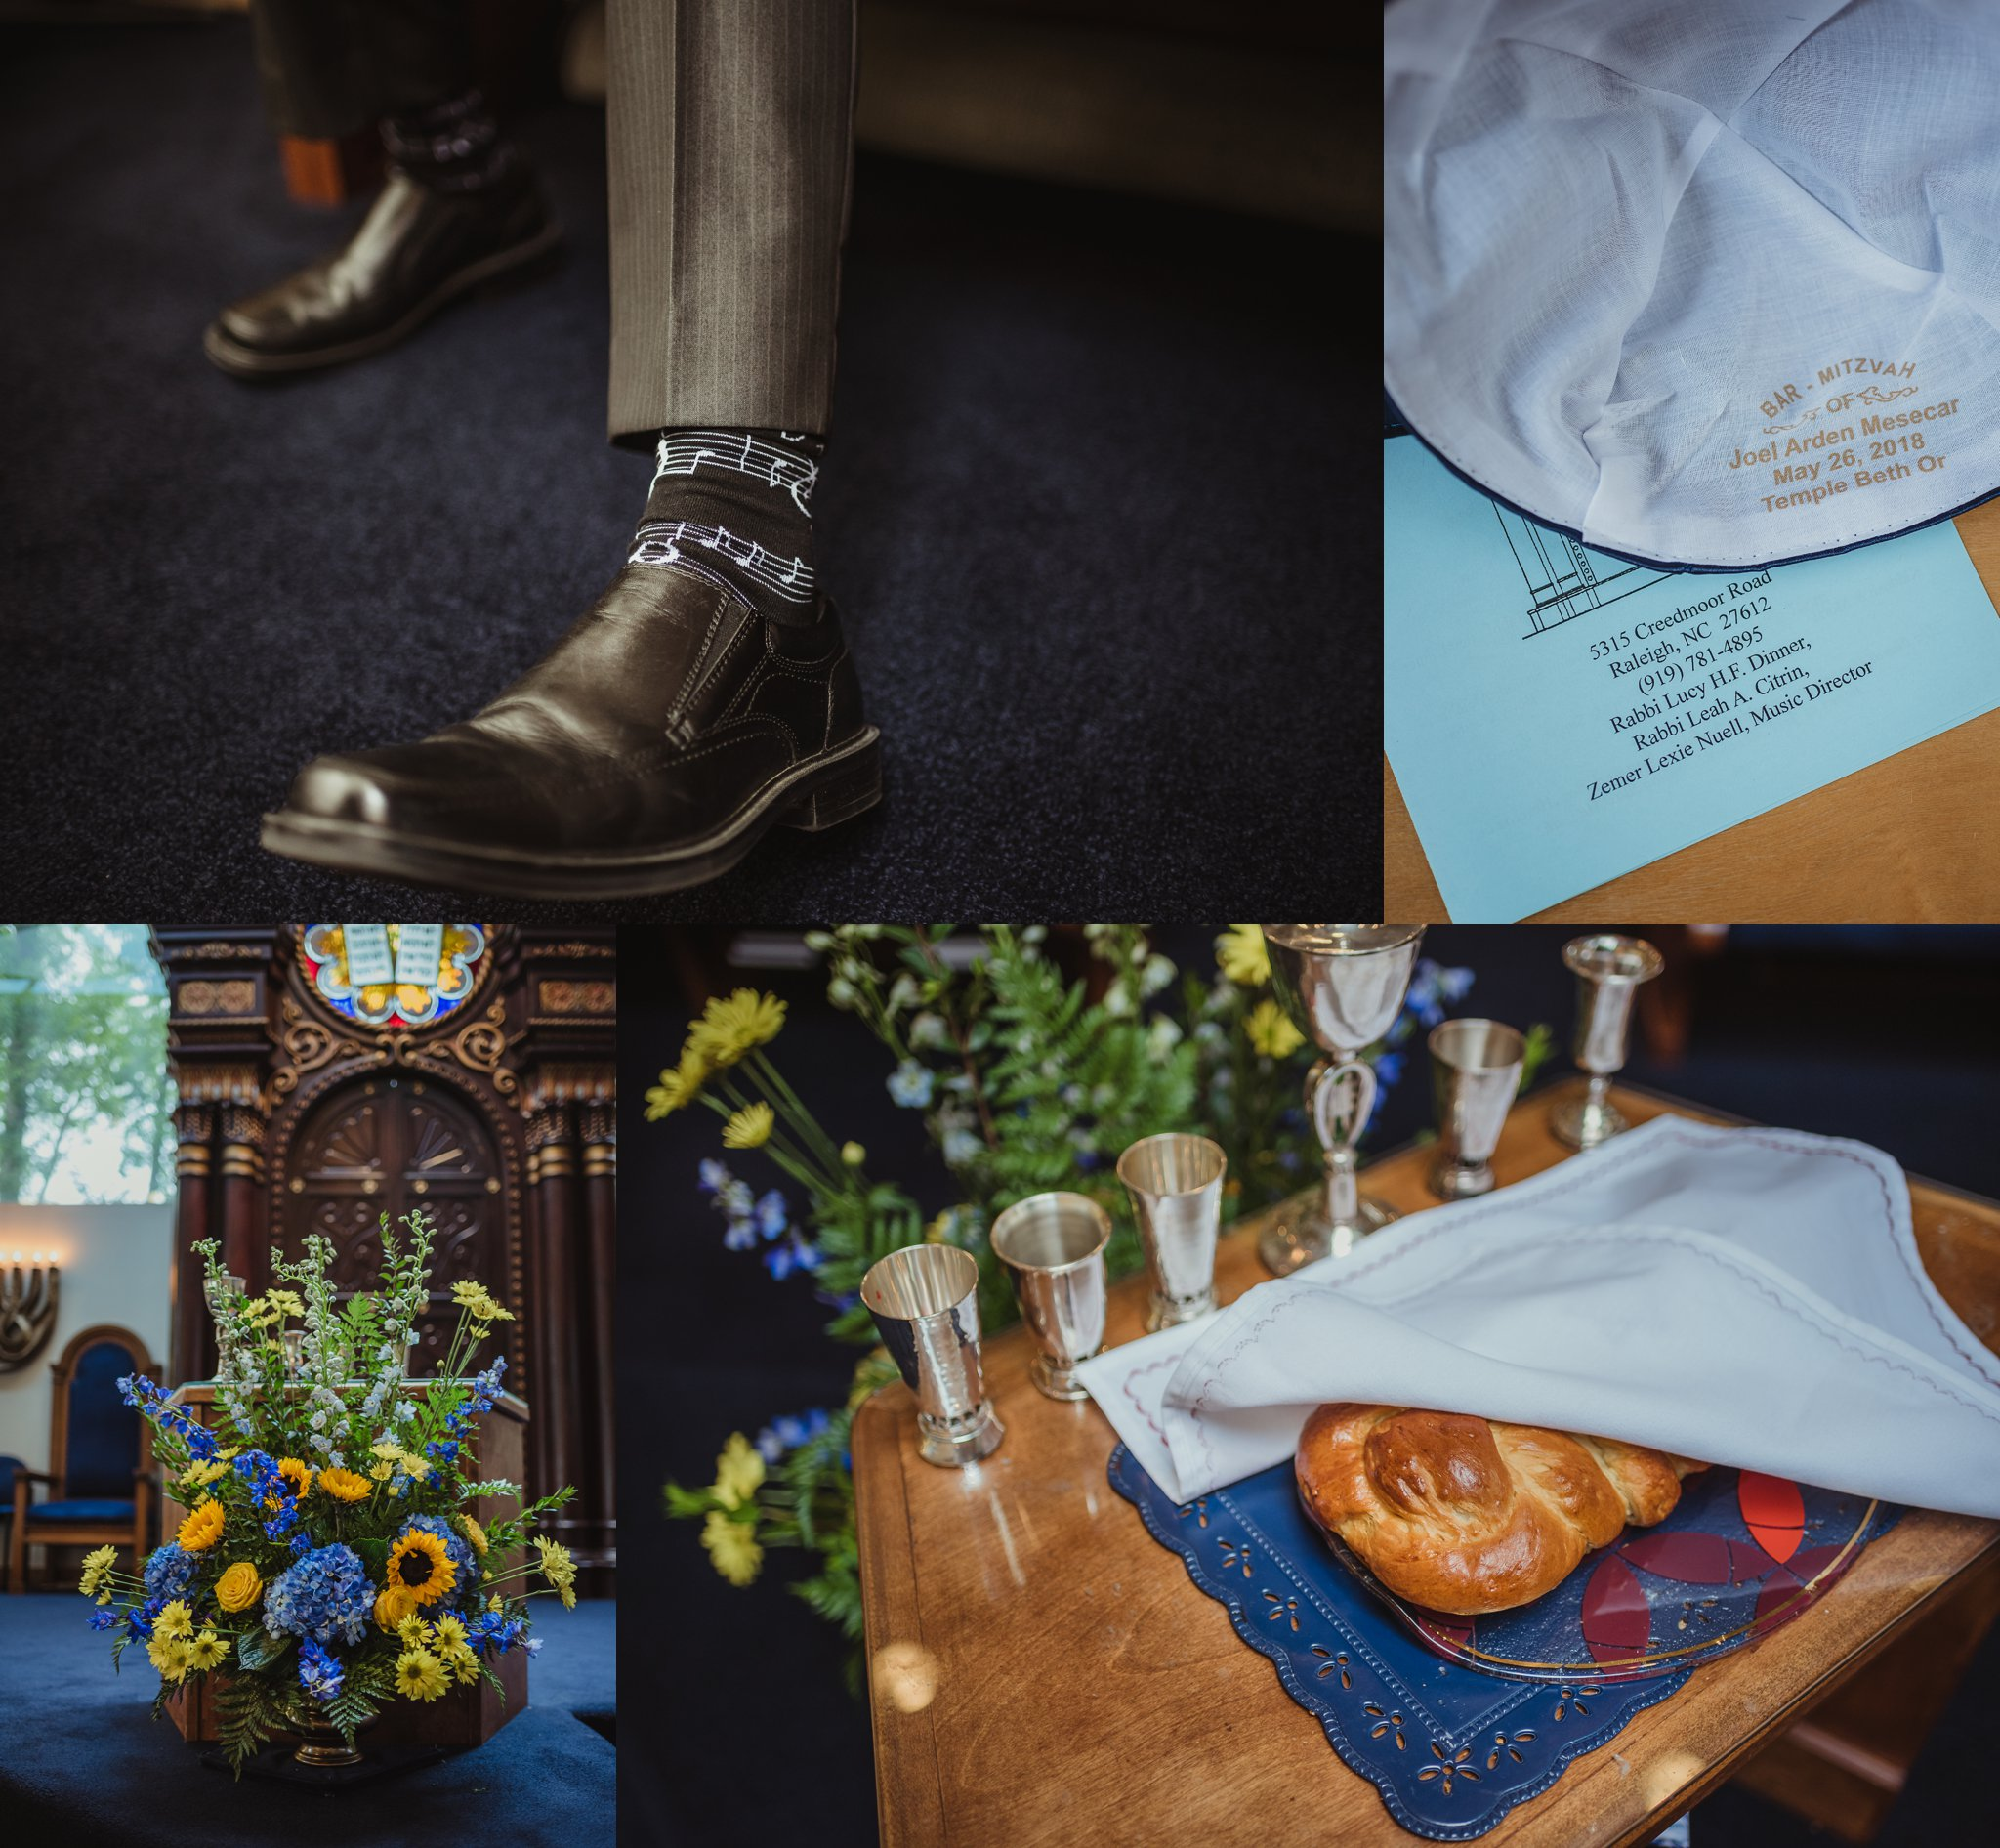 Details of the mitzvah celebration at Temple Beth Or in Raleigh, North Carolina, such as the ark, kippah, challah bread, and music-themed socks, images by Rose Trail Images.